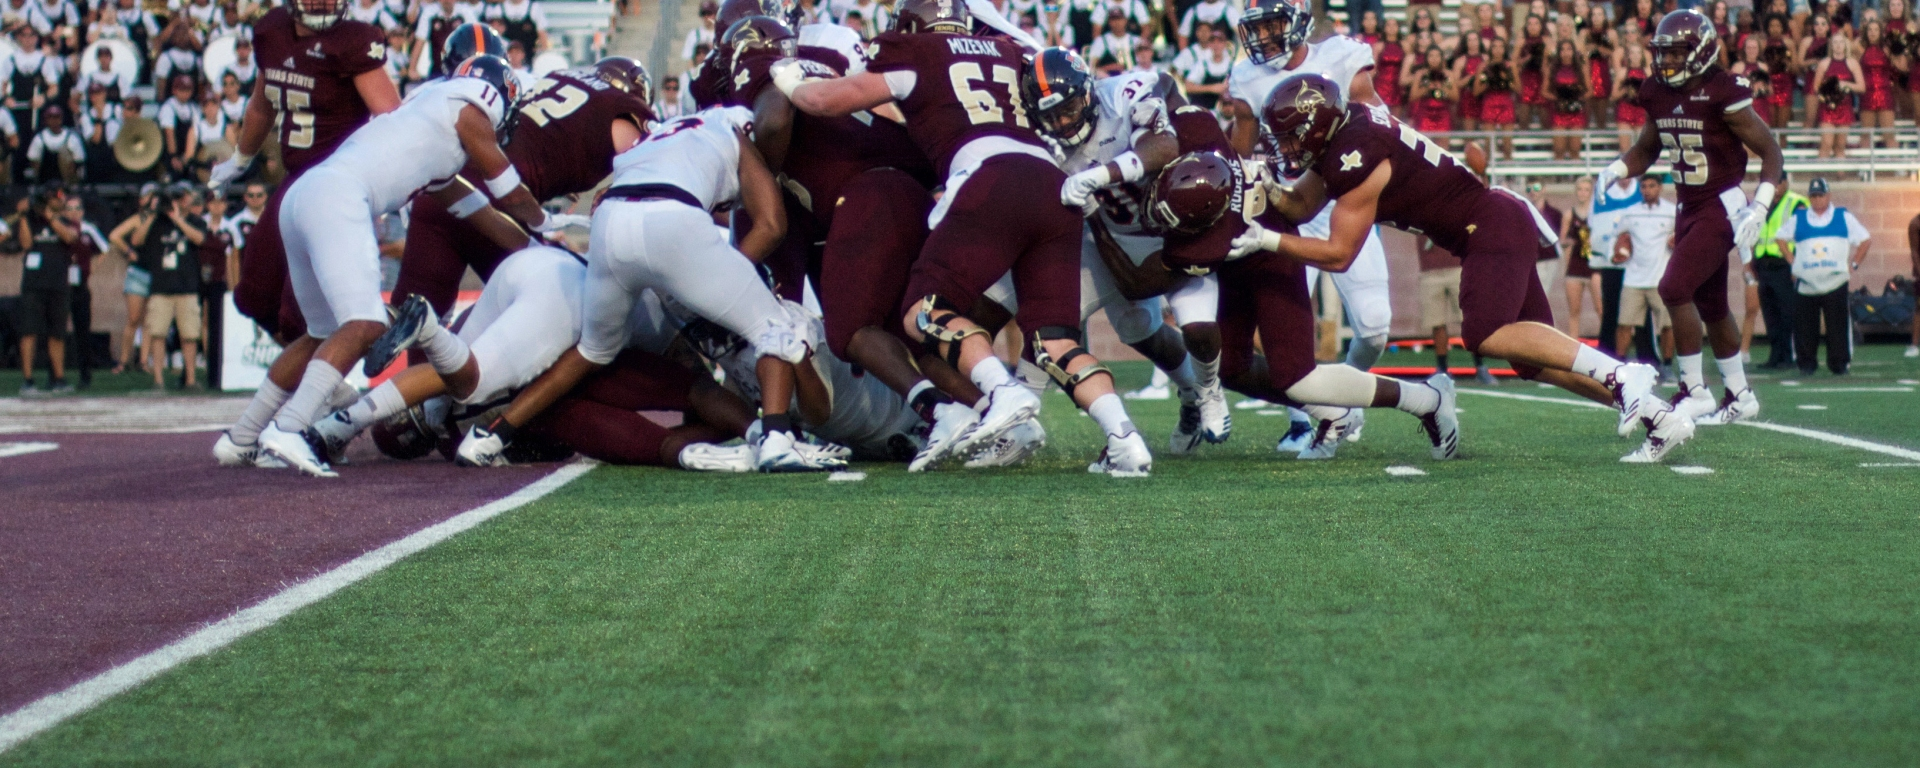 In a goal line scrum of white UTSA jerseys and black Texas State jerseys, the Texas State offensive line is creating a push into the end zone for their running back.